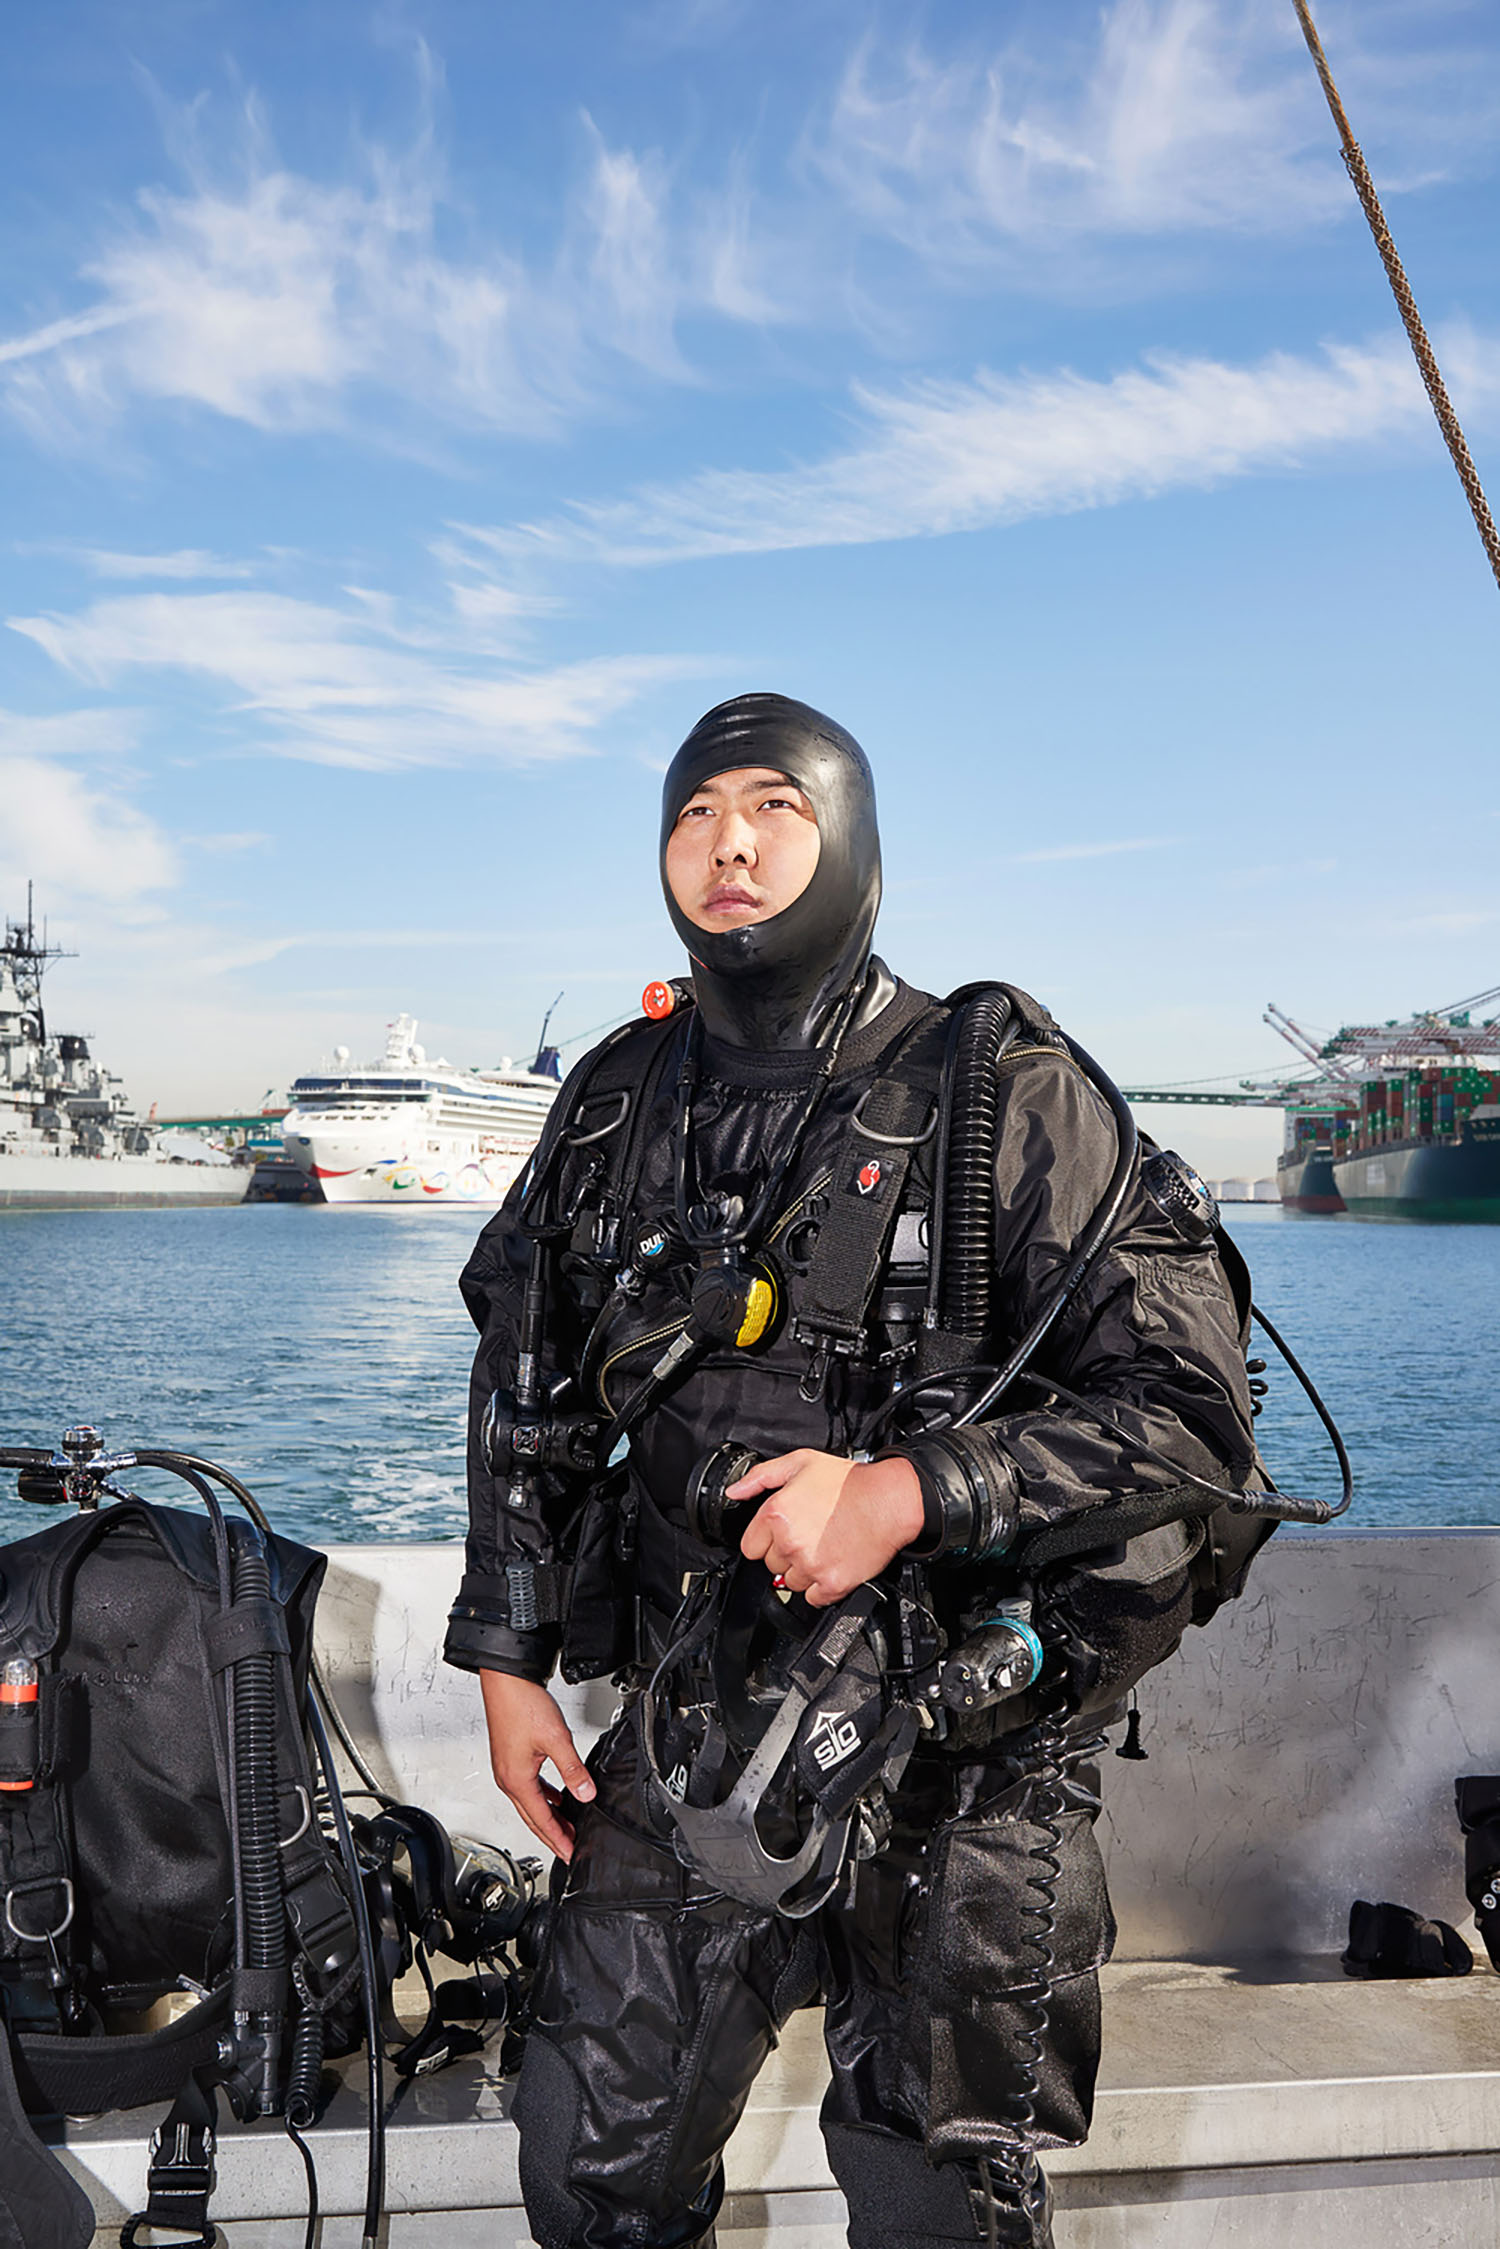 Frank Huan, Los Angeles Port Police Diver, San Pedro, California, 2015